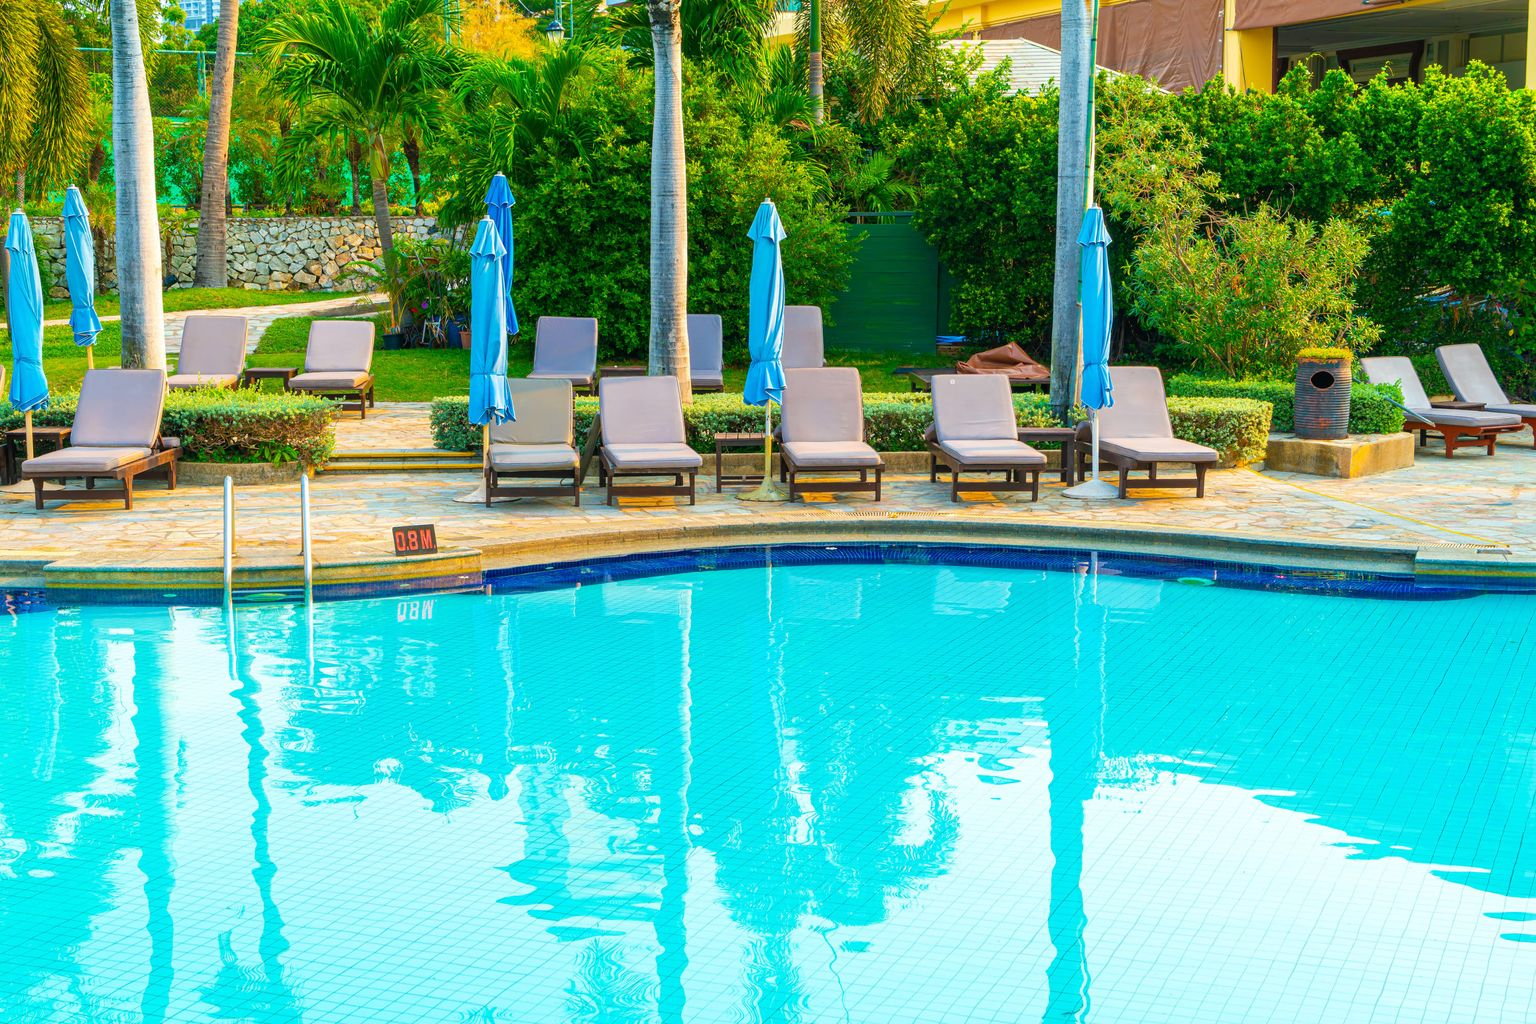 chair-pool-and-umbrella-around-swimming-